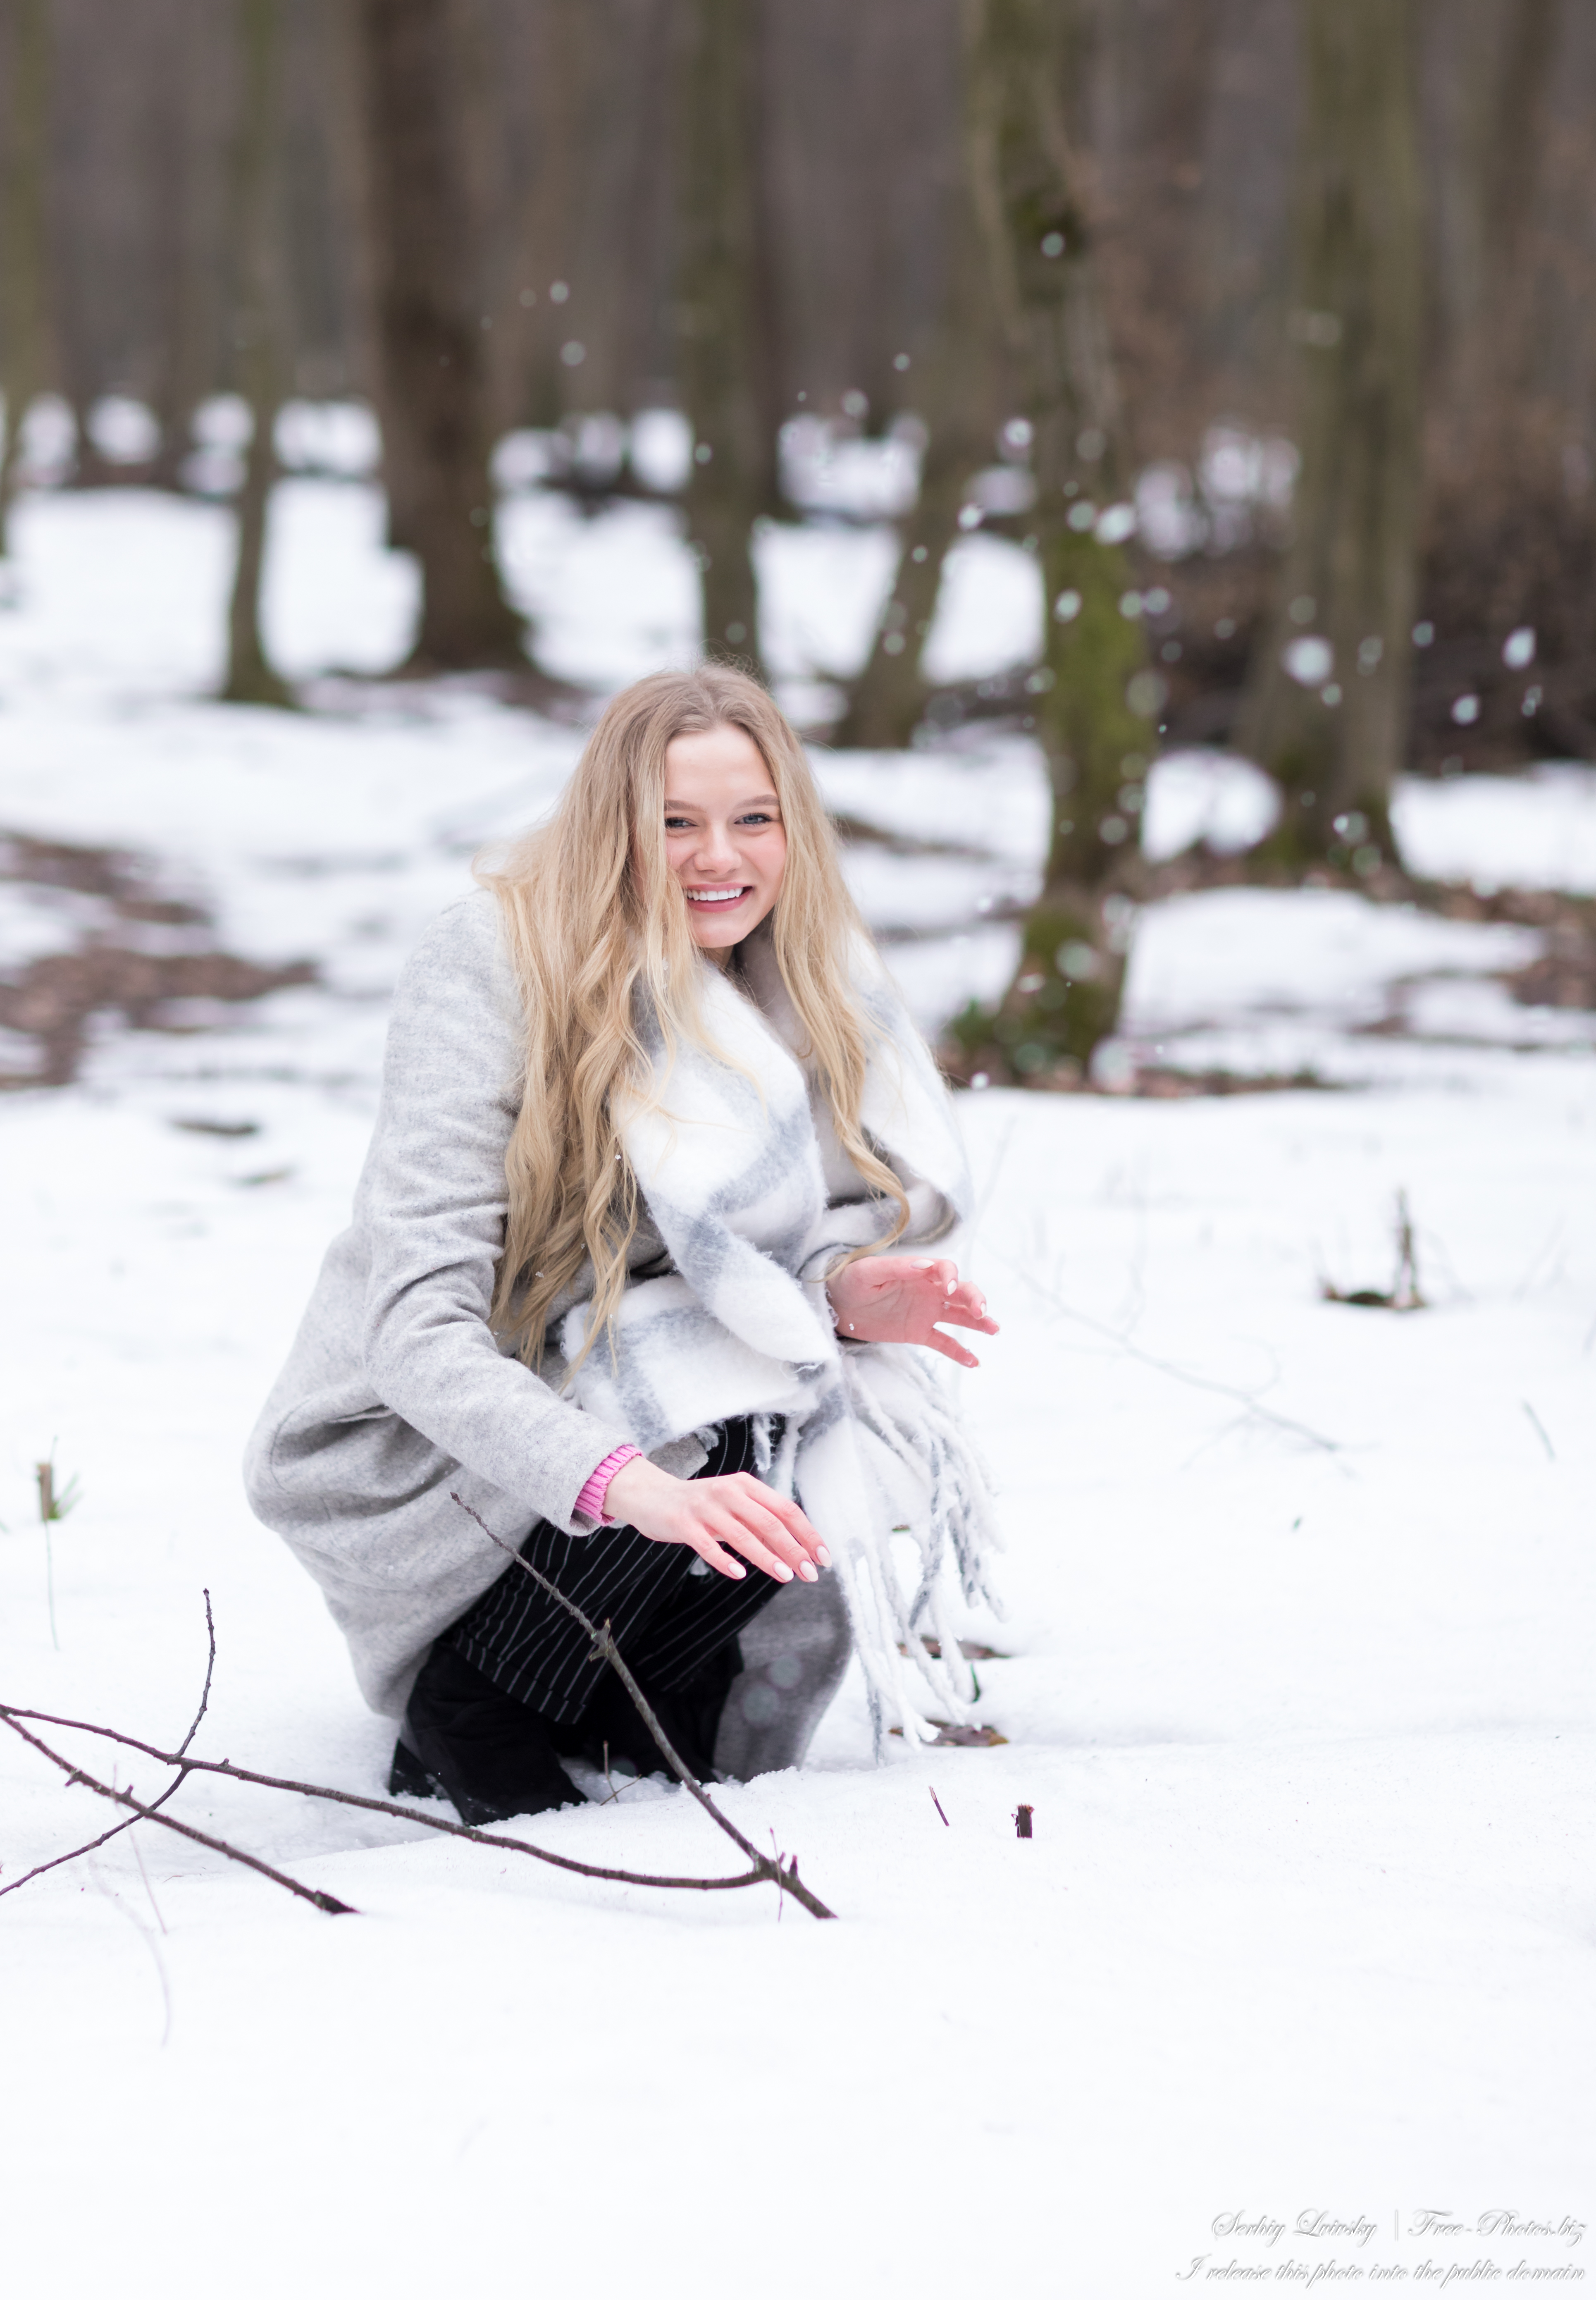 oksana_a_19-year-old_natural_blonde_girl_photographed_by_serhiy_lvivsky_in_march_2021_45